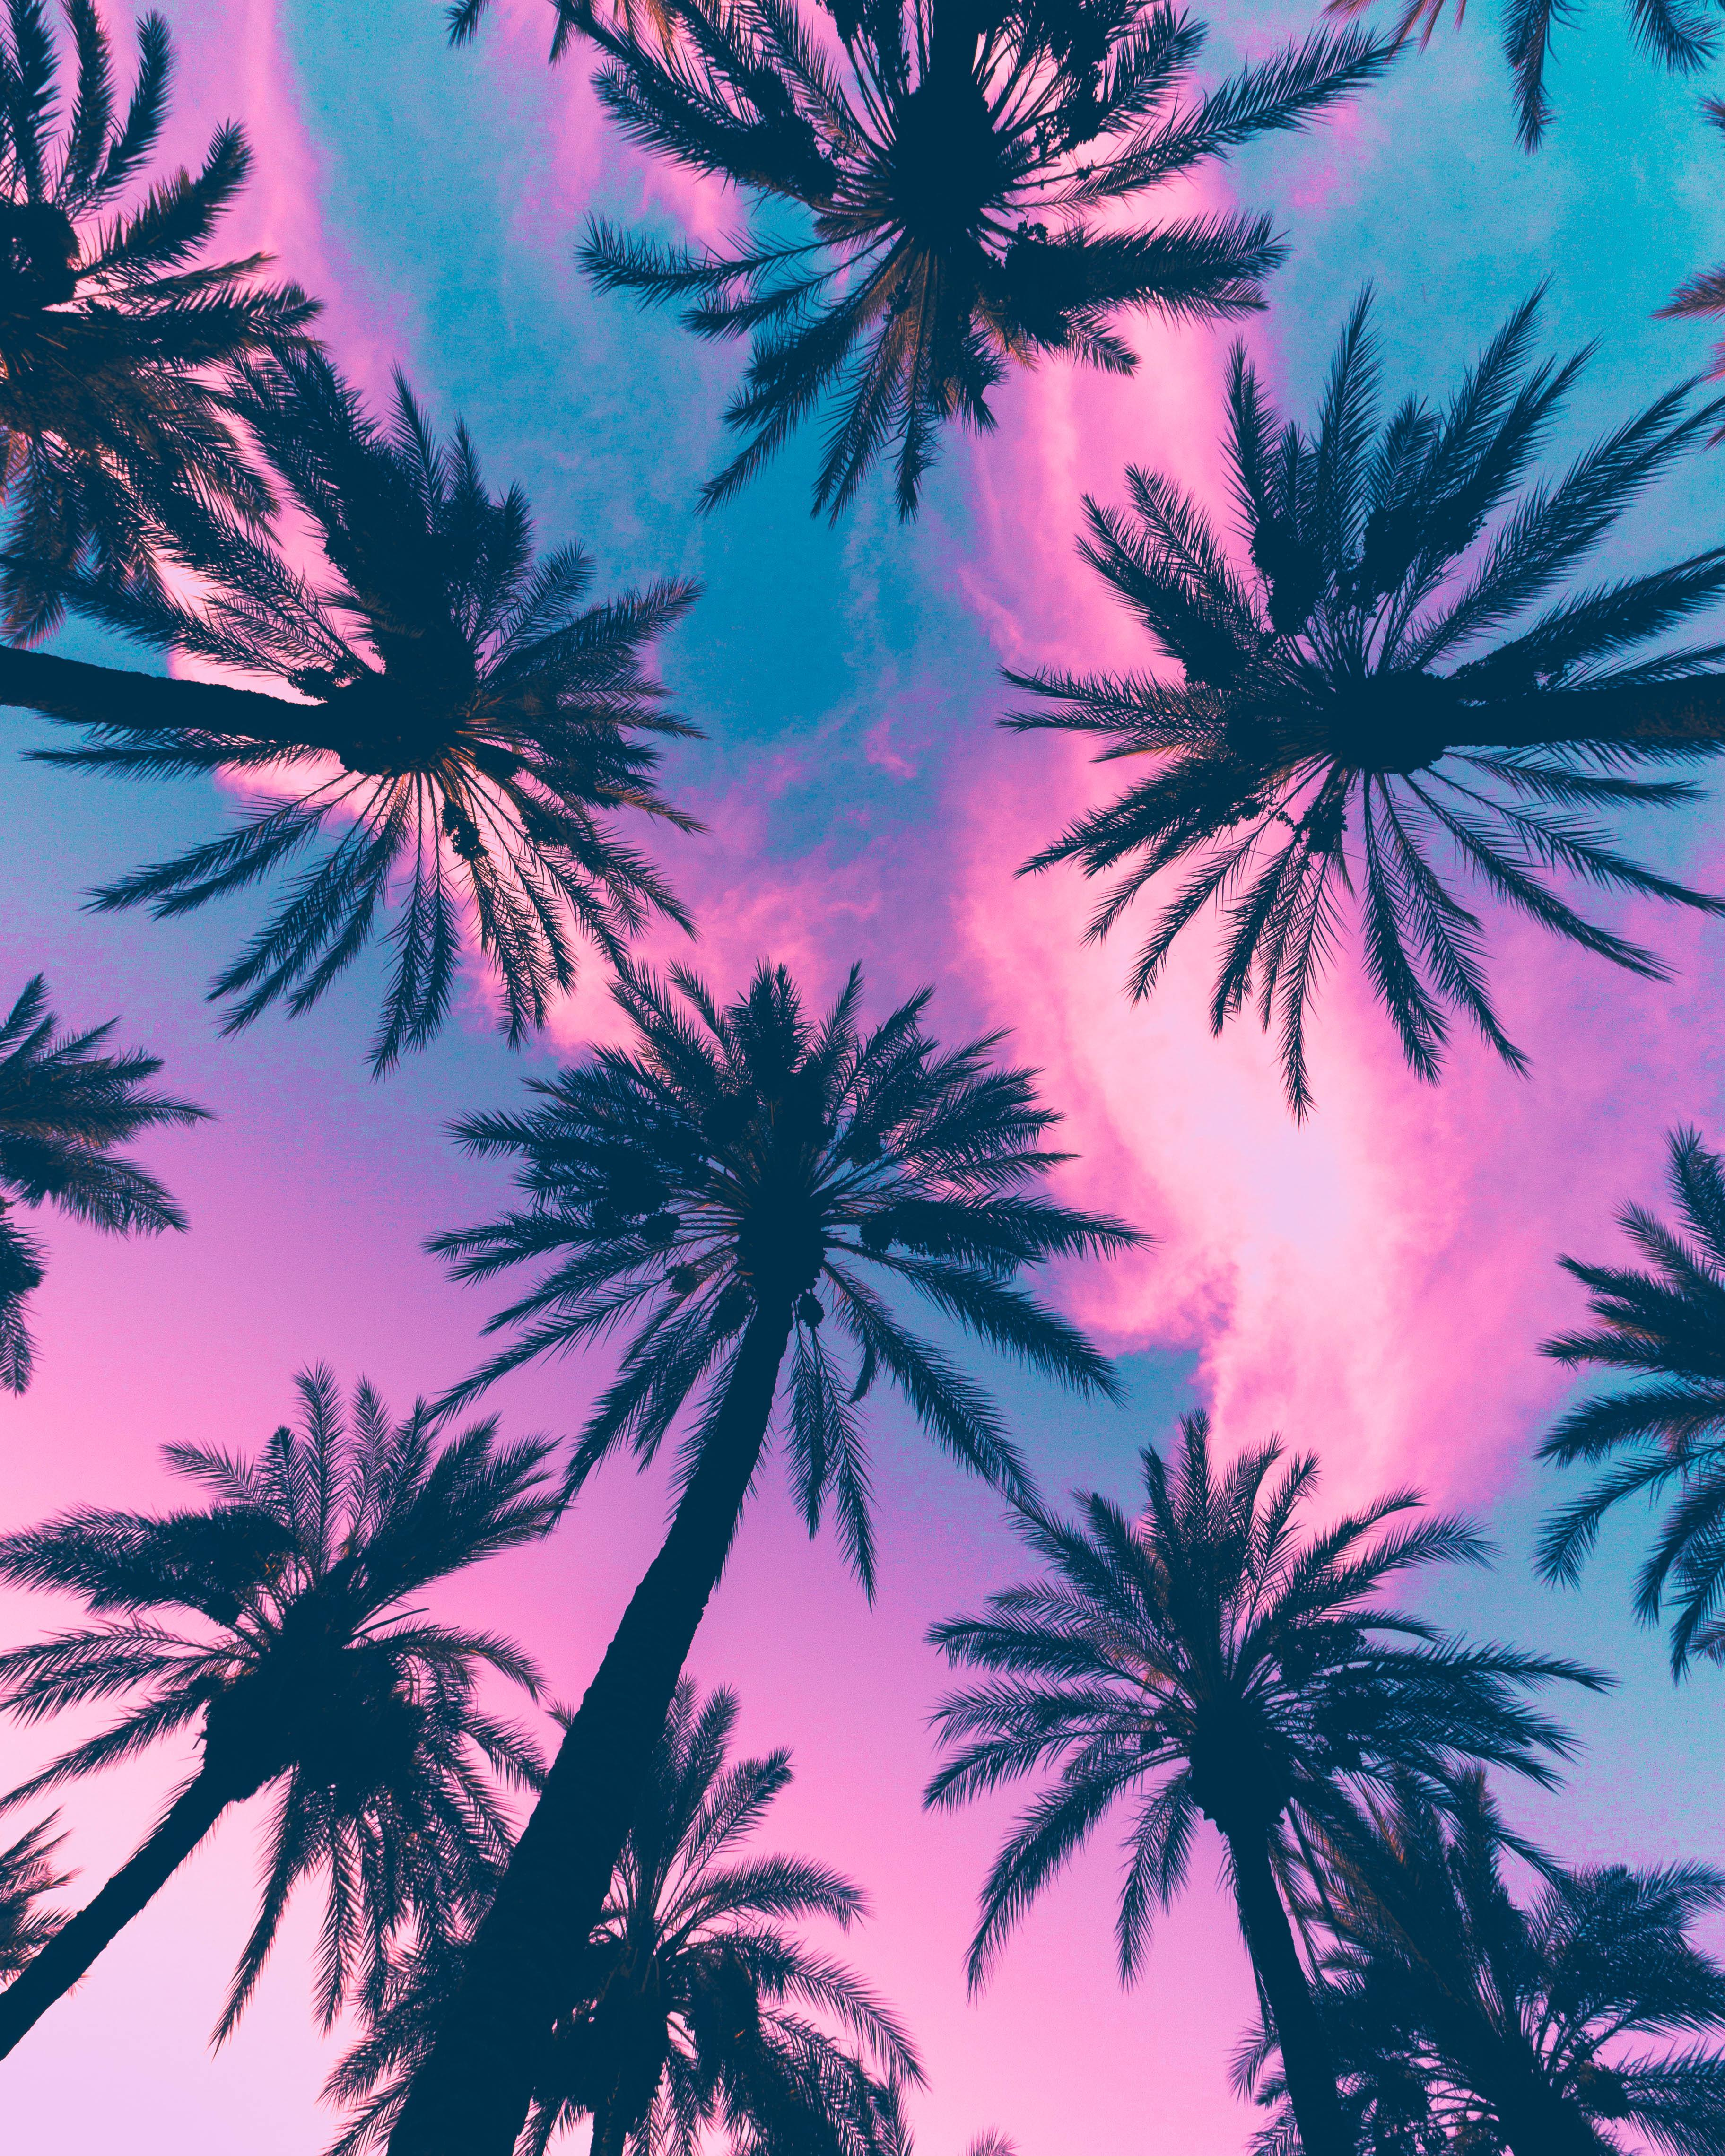 3d Blossoms Live Wallpaper Itap Of Some Palm Trees Itookapicture